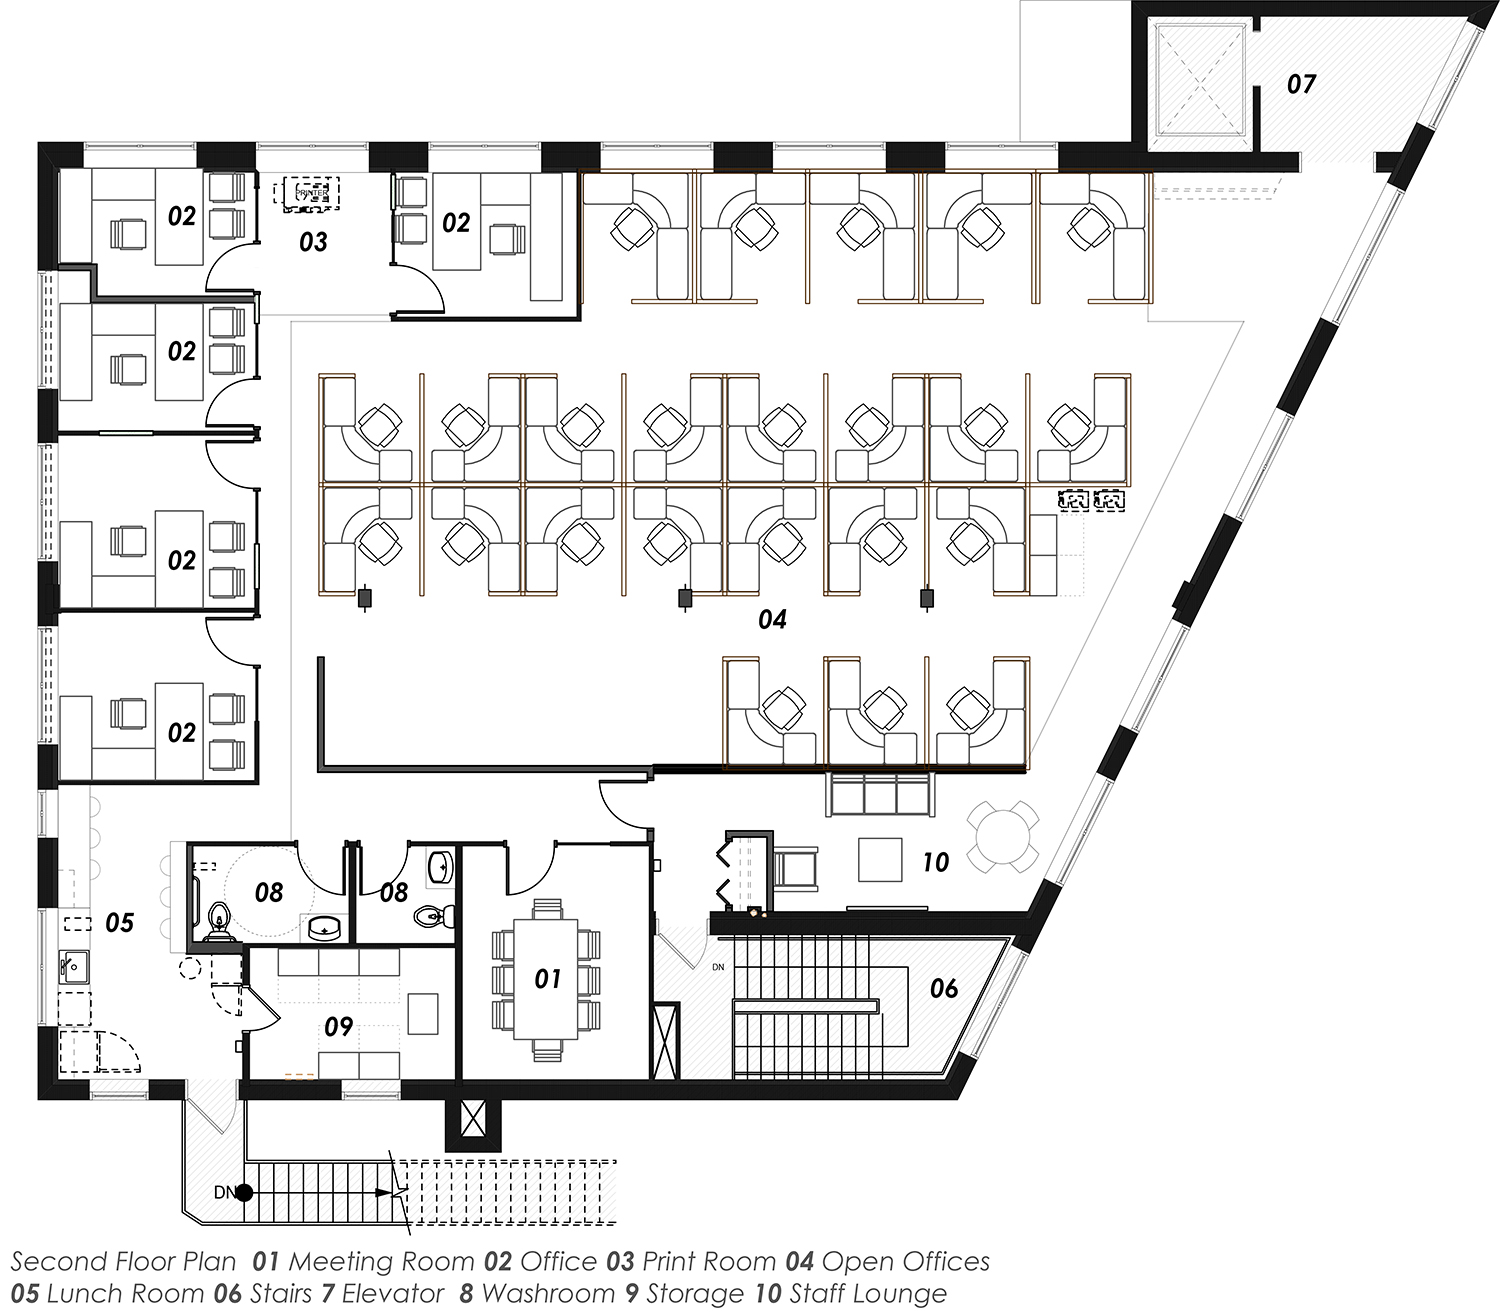 Exchange-Group-Offices-Second-Floor-Plan.jpg